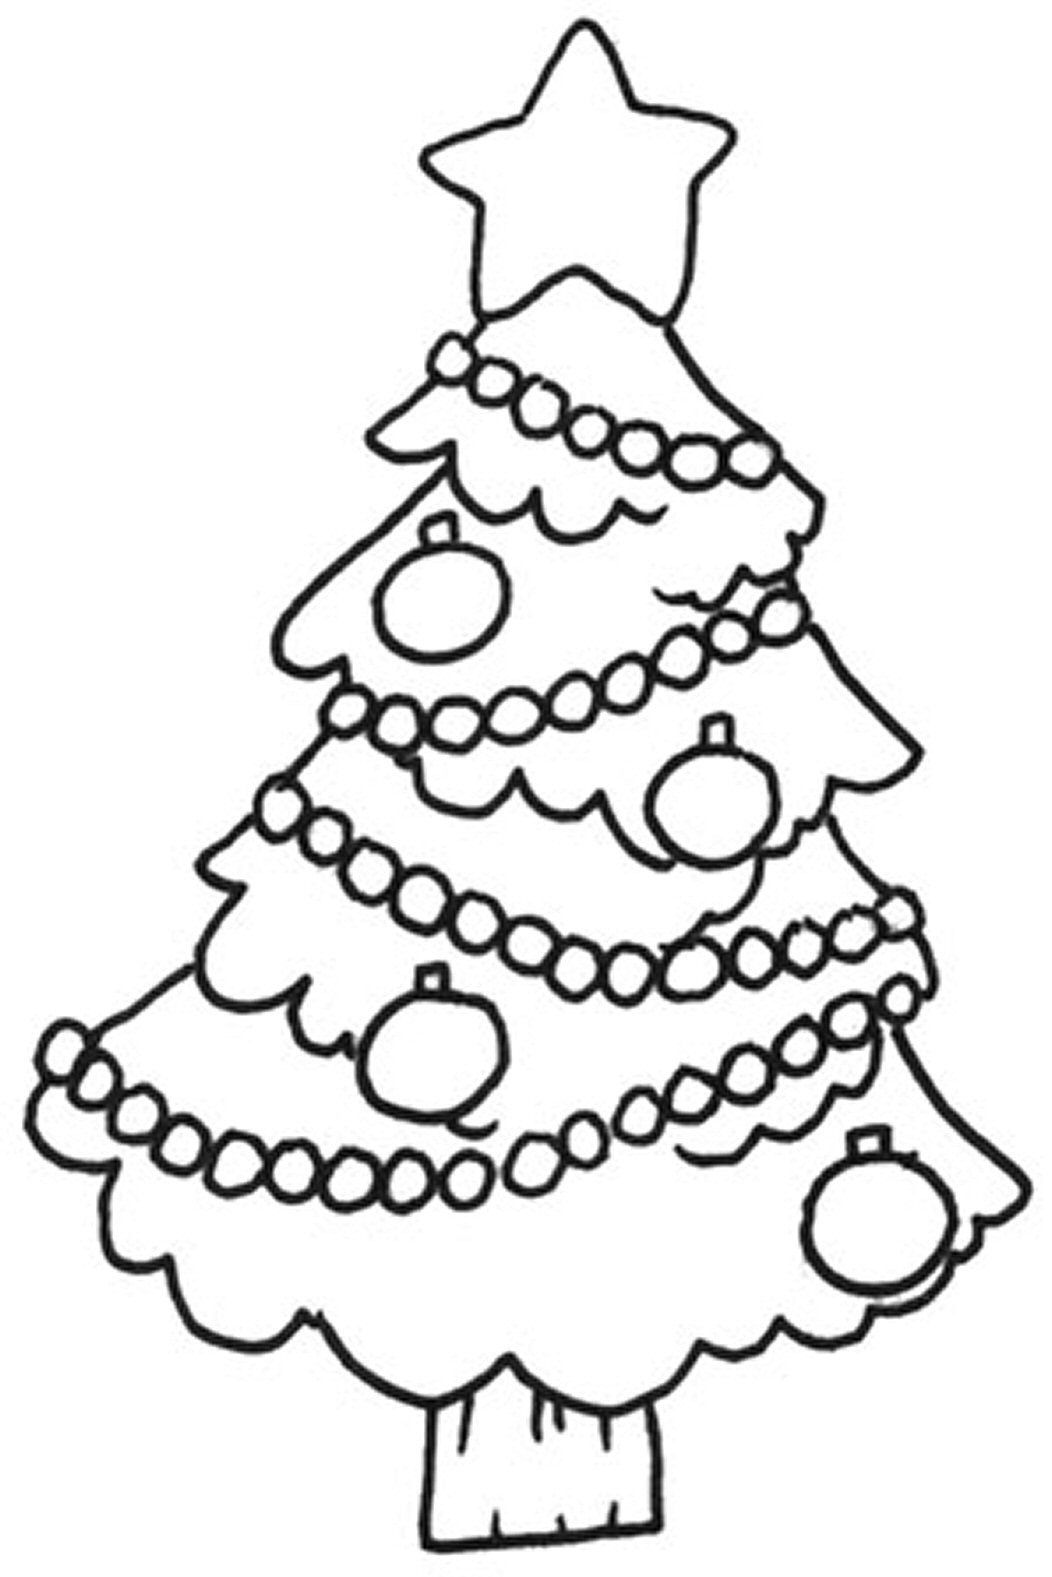 Christmas Tree Coloring Free printable | Chidren Coloring Pages ...